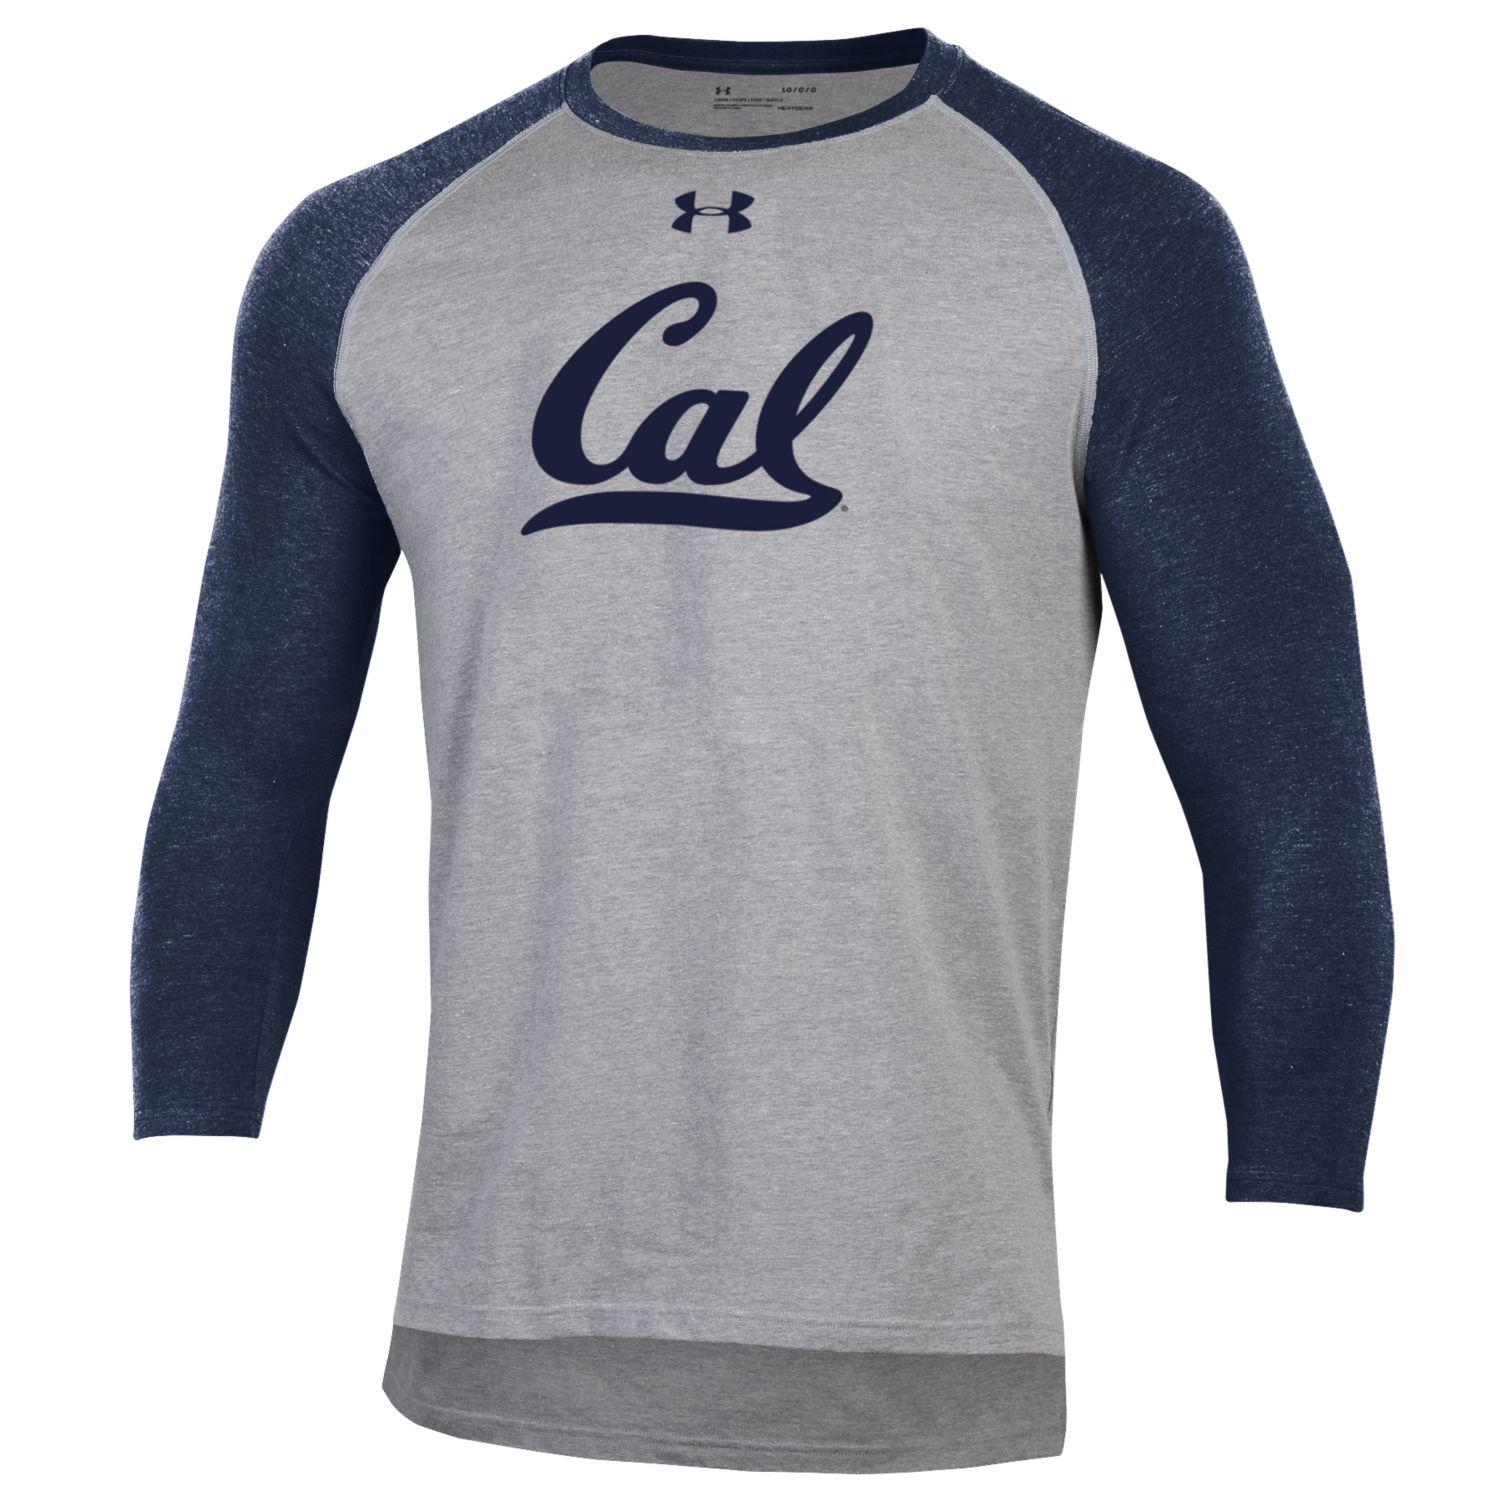 Men's Baseball Tee Under Armour Cal Logo